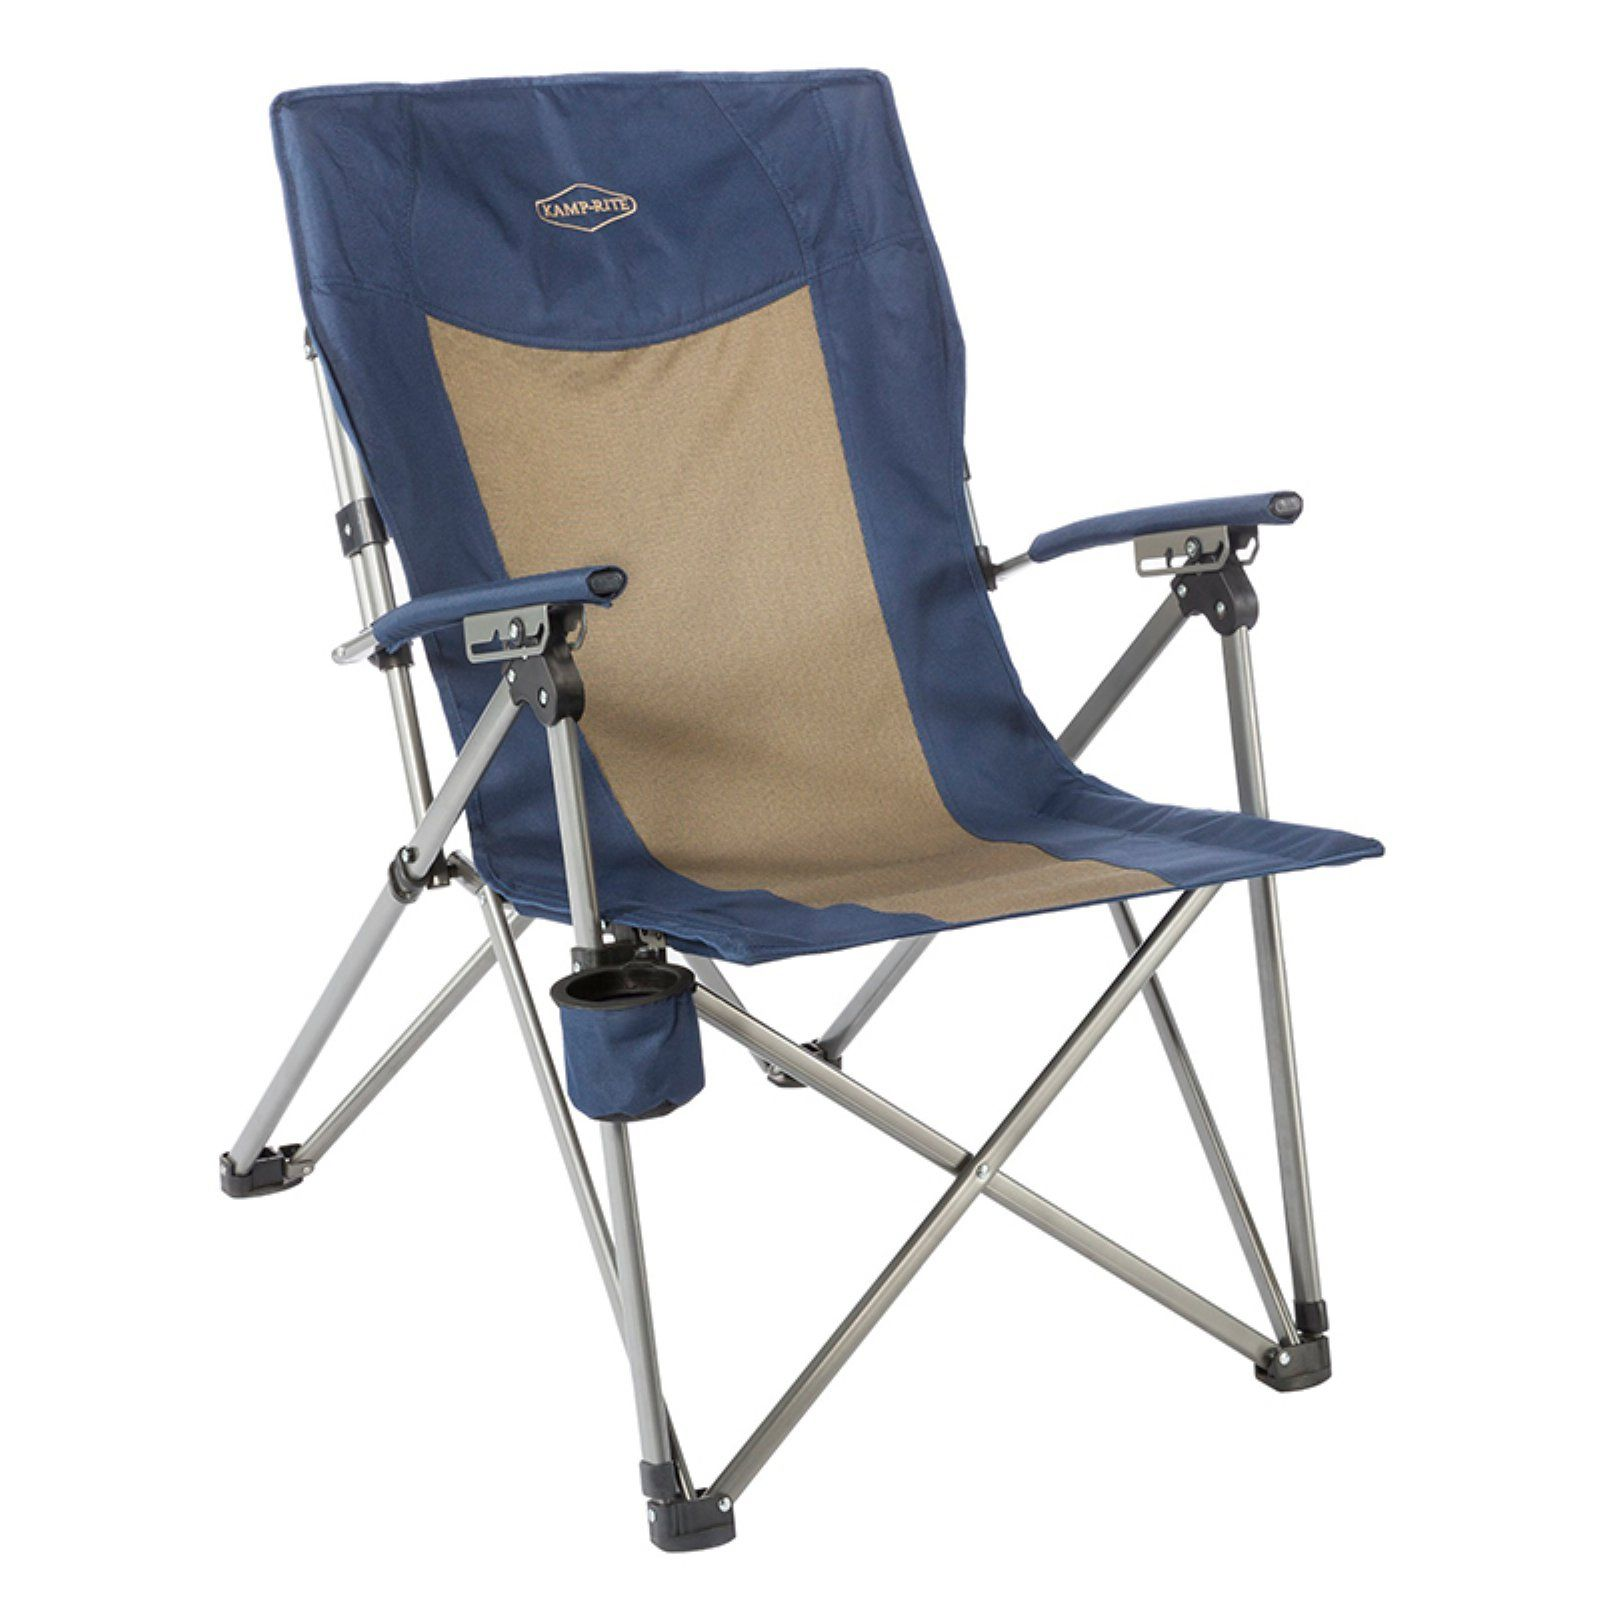 Fold Up Chair With Canopy Outdoor Kamp Rite 3 Position Hard Arm Reclining Chair In 2019